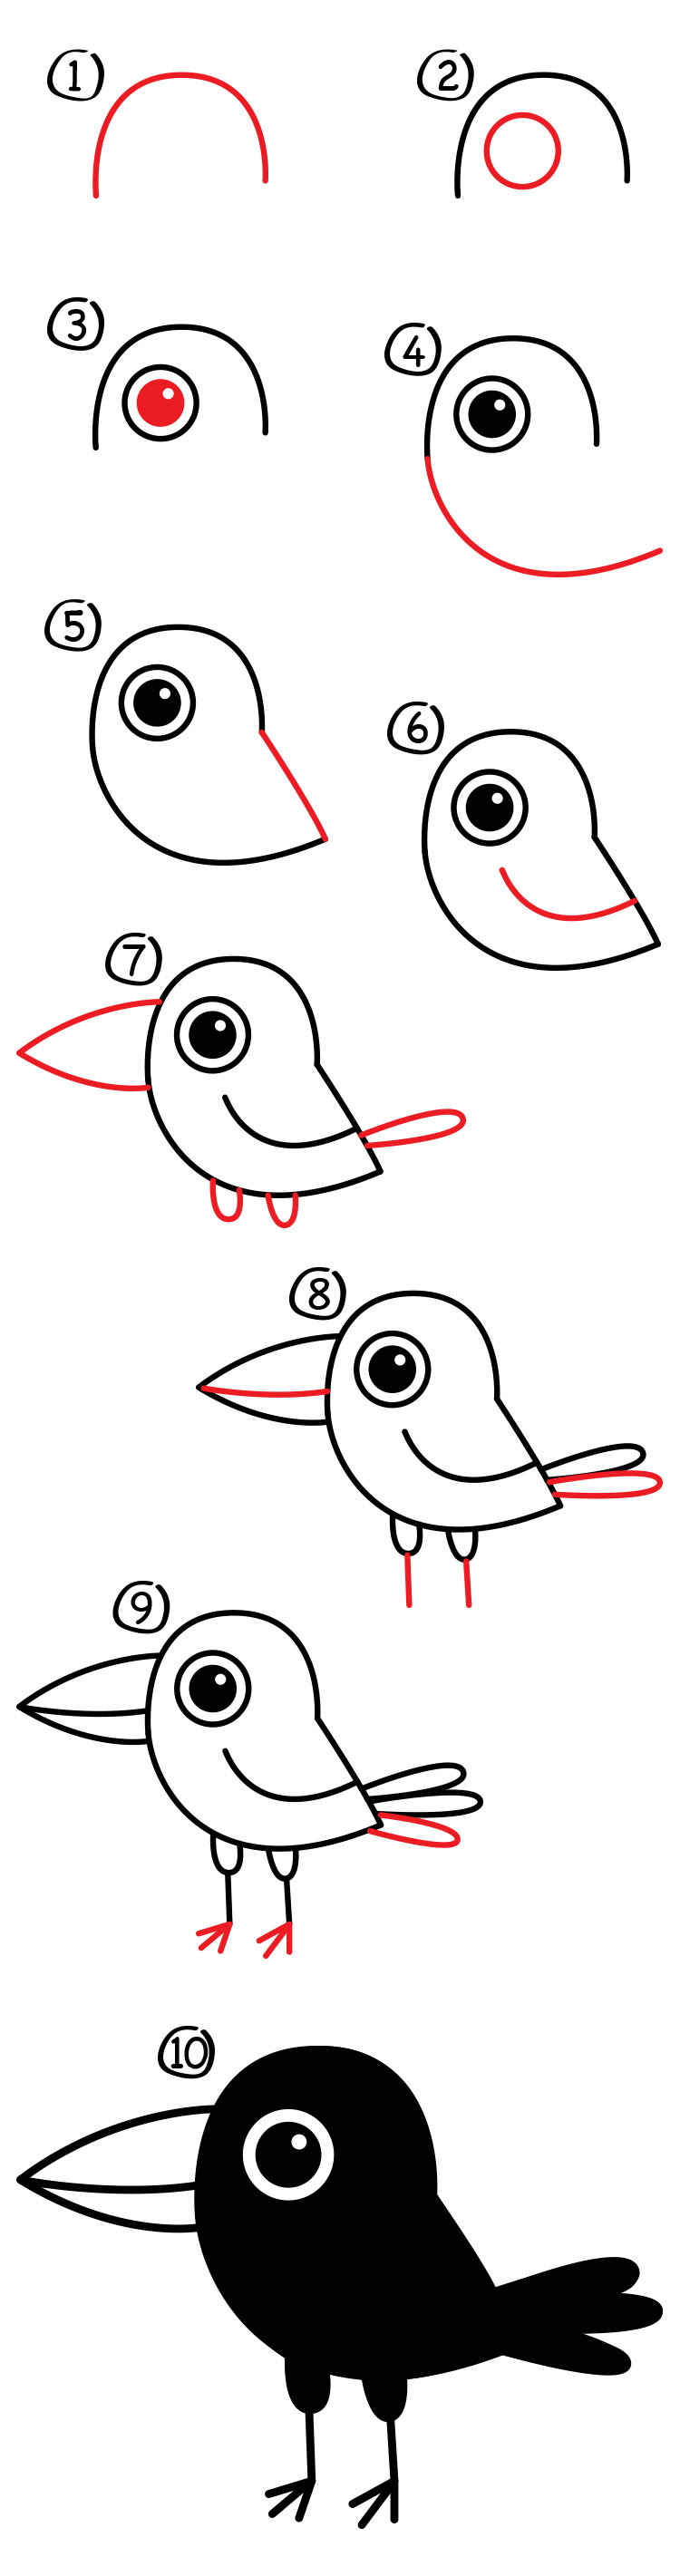 Download How To Draw A Cartoon Raven - Art For Kids Hub